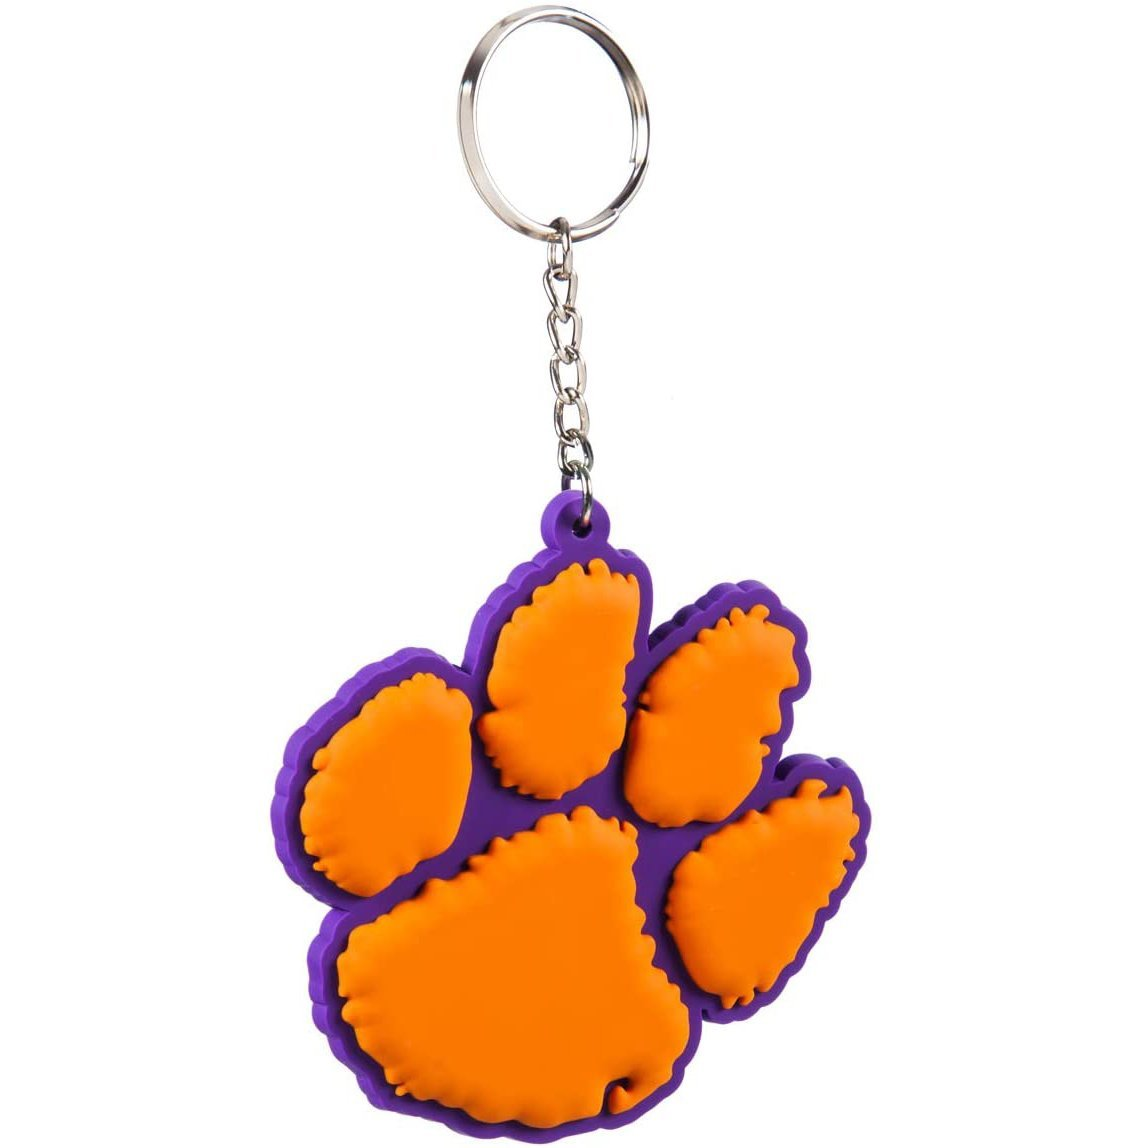 Tiger Paw Rubber Keychain - Mr. Knickerbocker